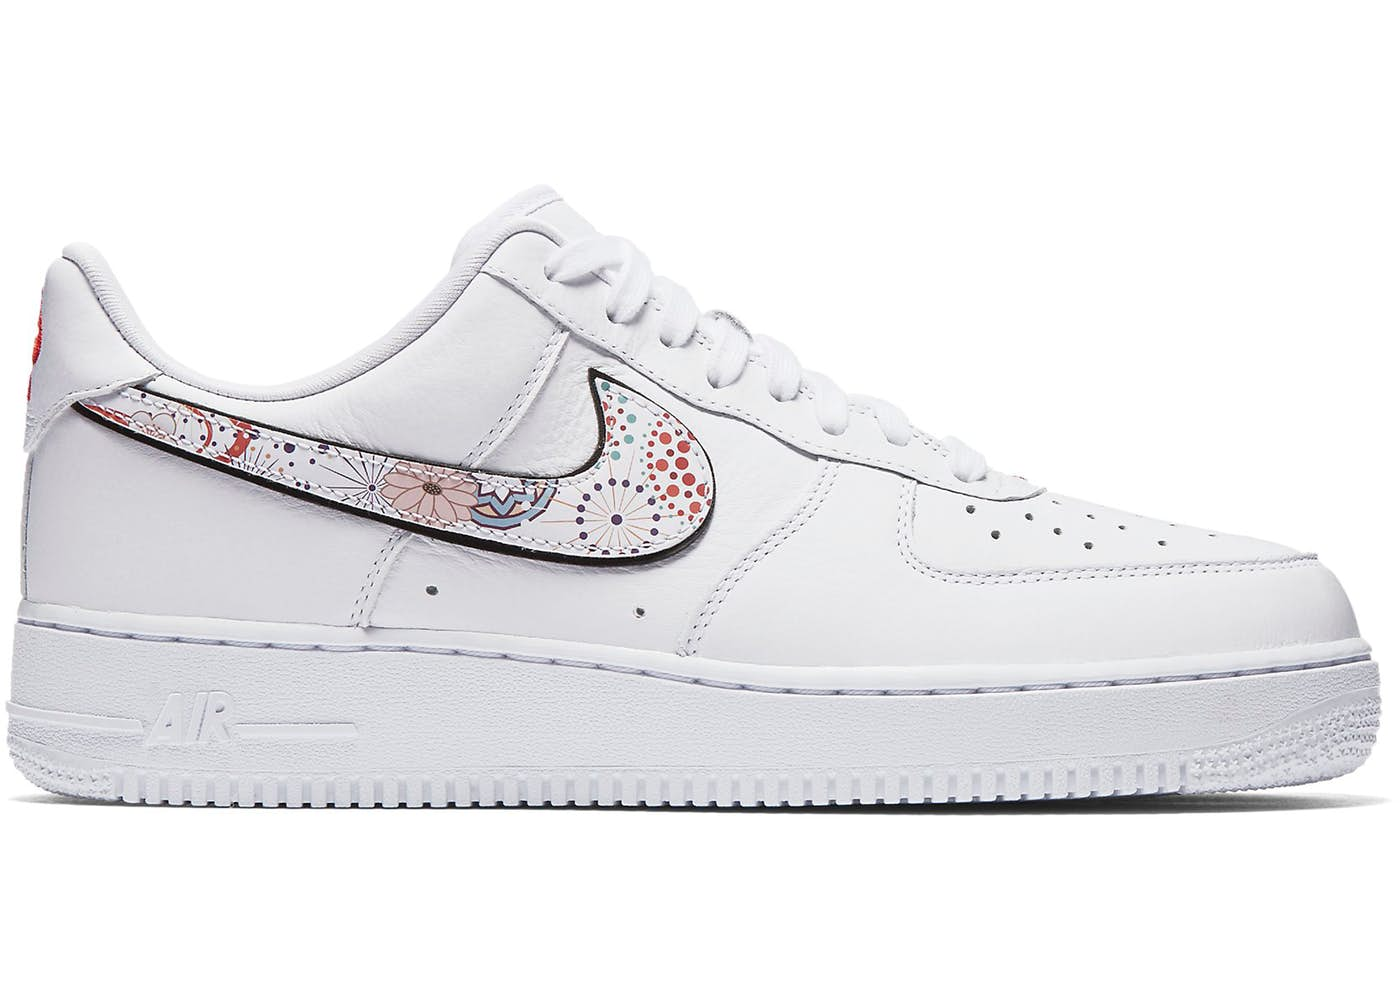 BUY Nike Air Force 1 Low Lunar New Year (2018) For Sale – AUTHENTECHS 5e2065860